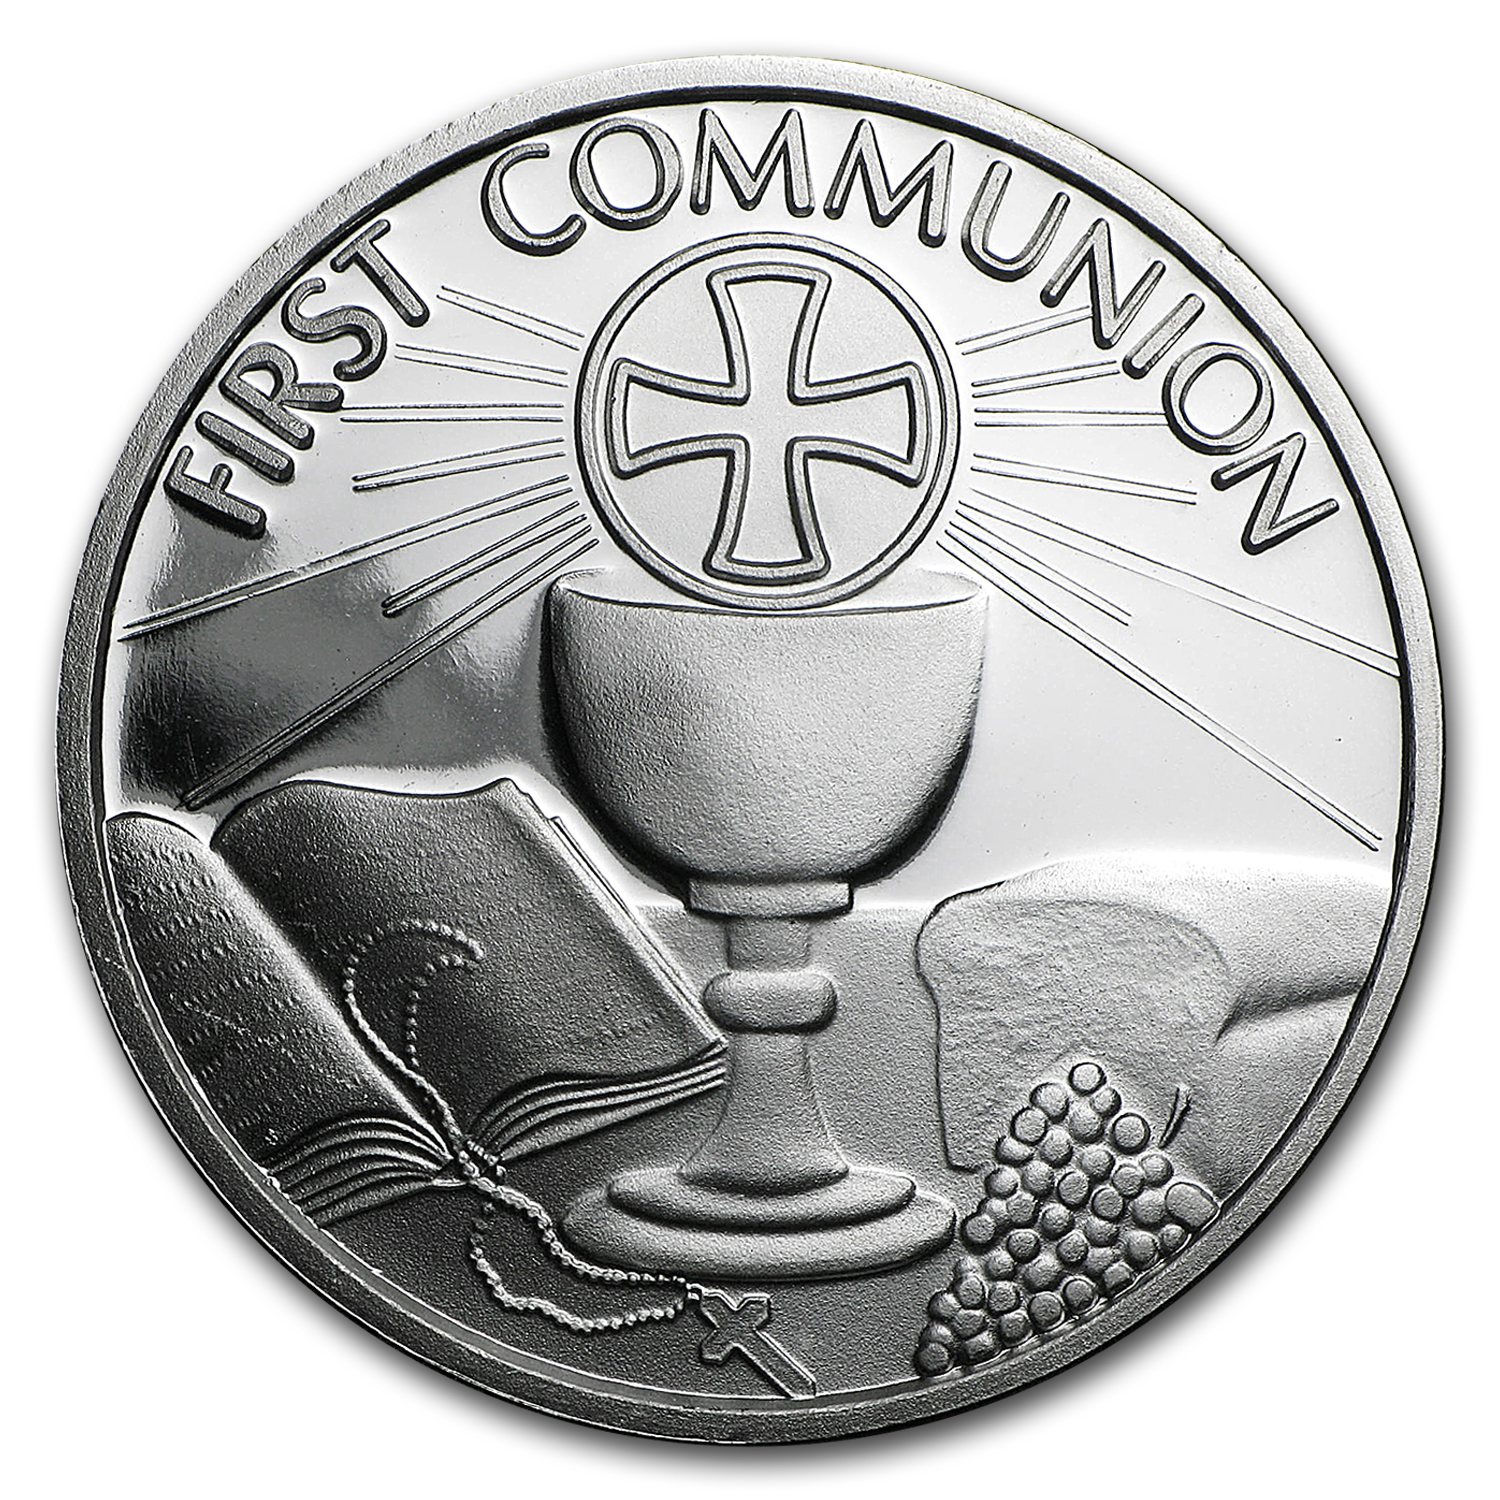 1 oz Silver Round - First Communion